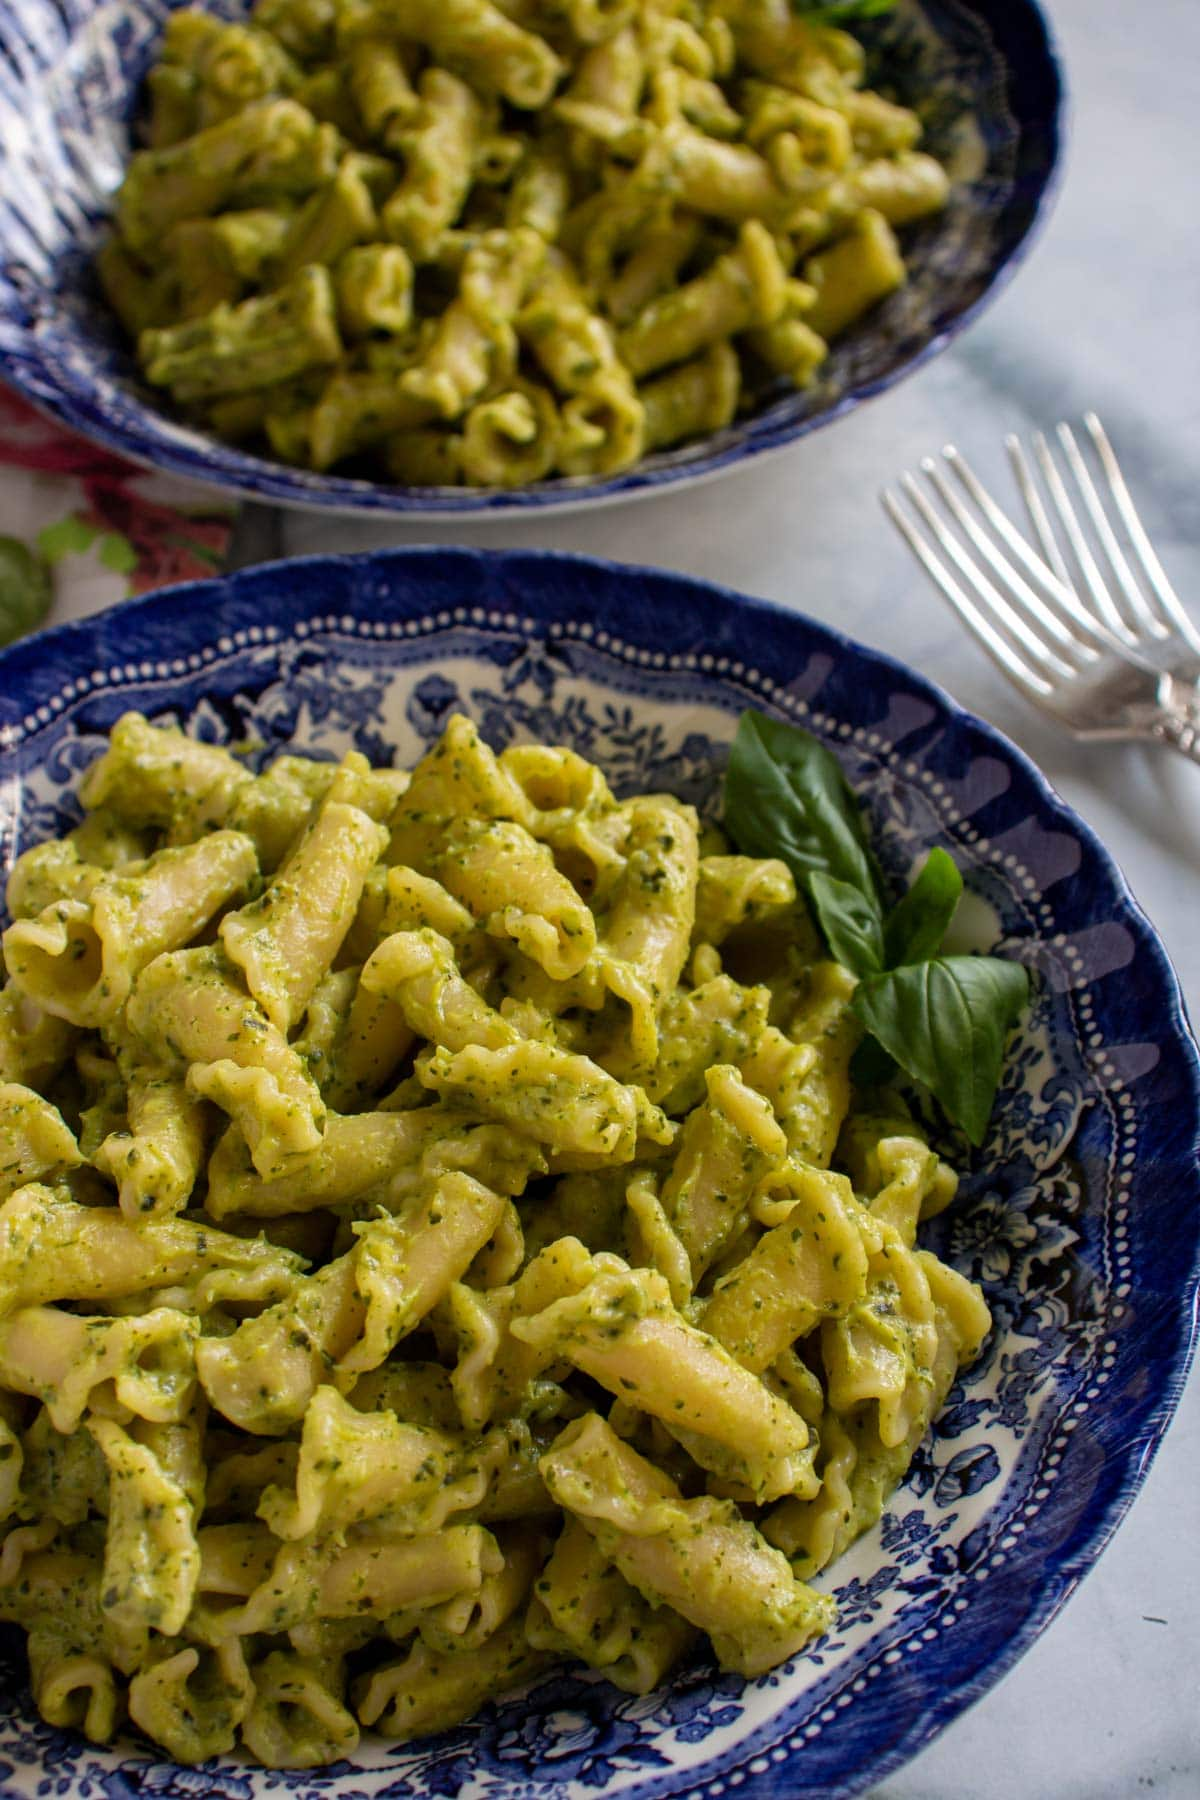 Two bowls of campanelle pasta in green sauce garnished with basil.